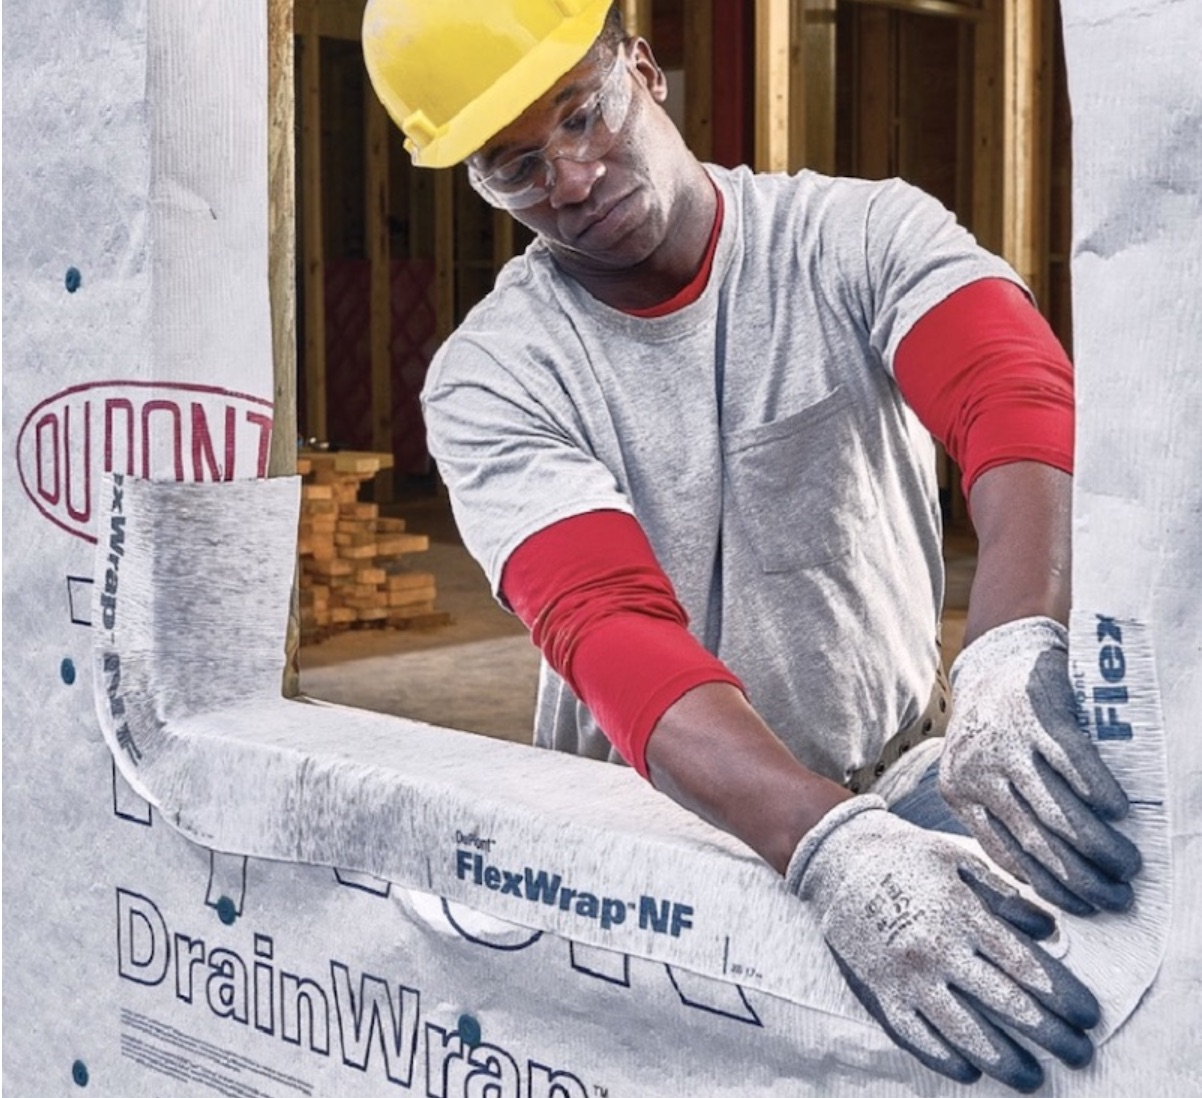 2020-IBS products-DuPont-FlexWrap